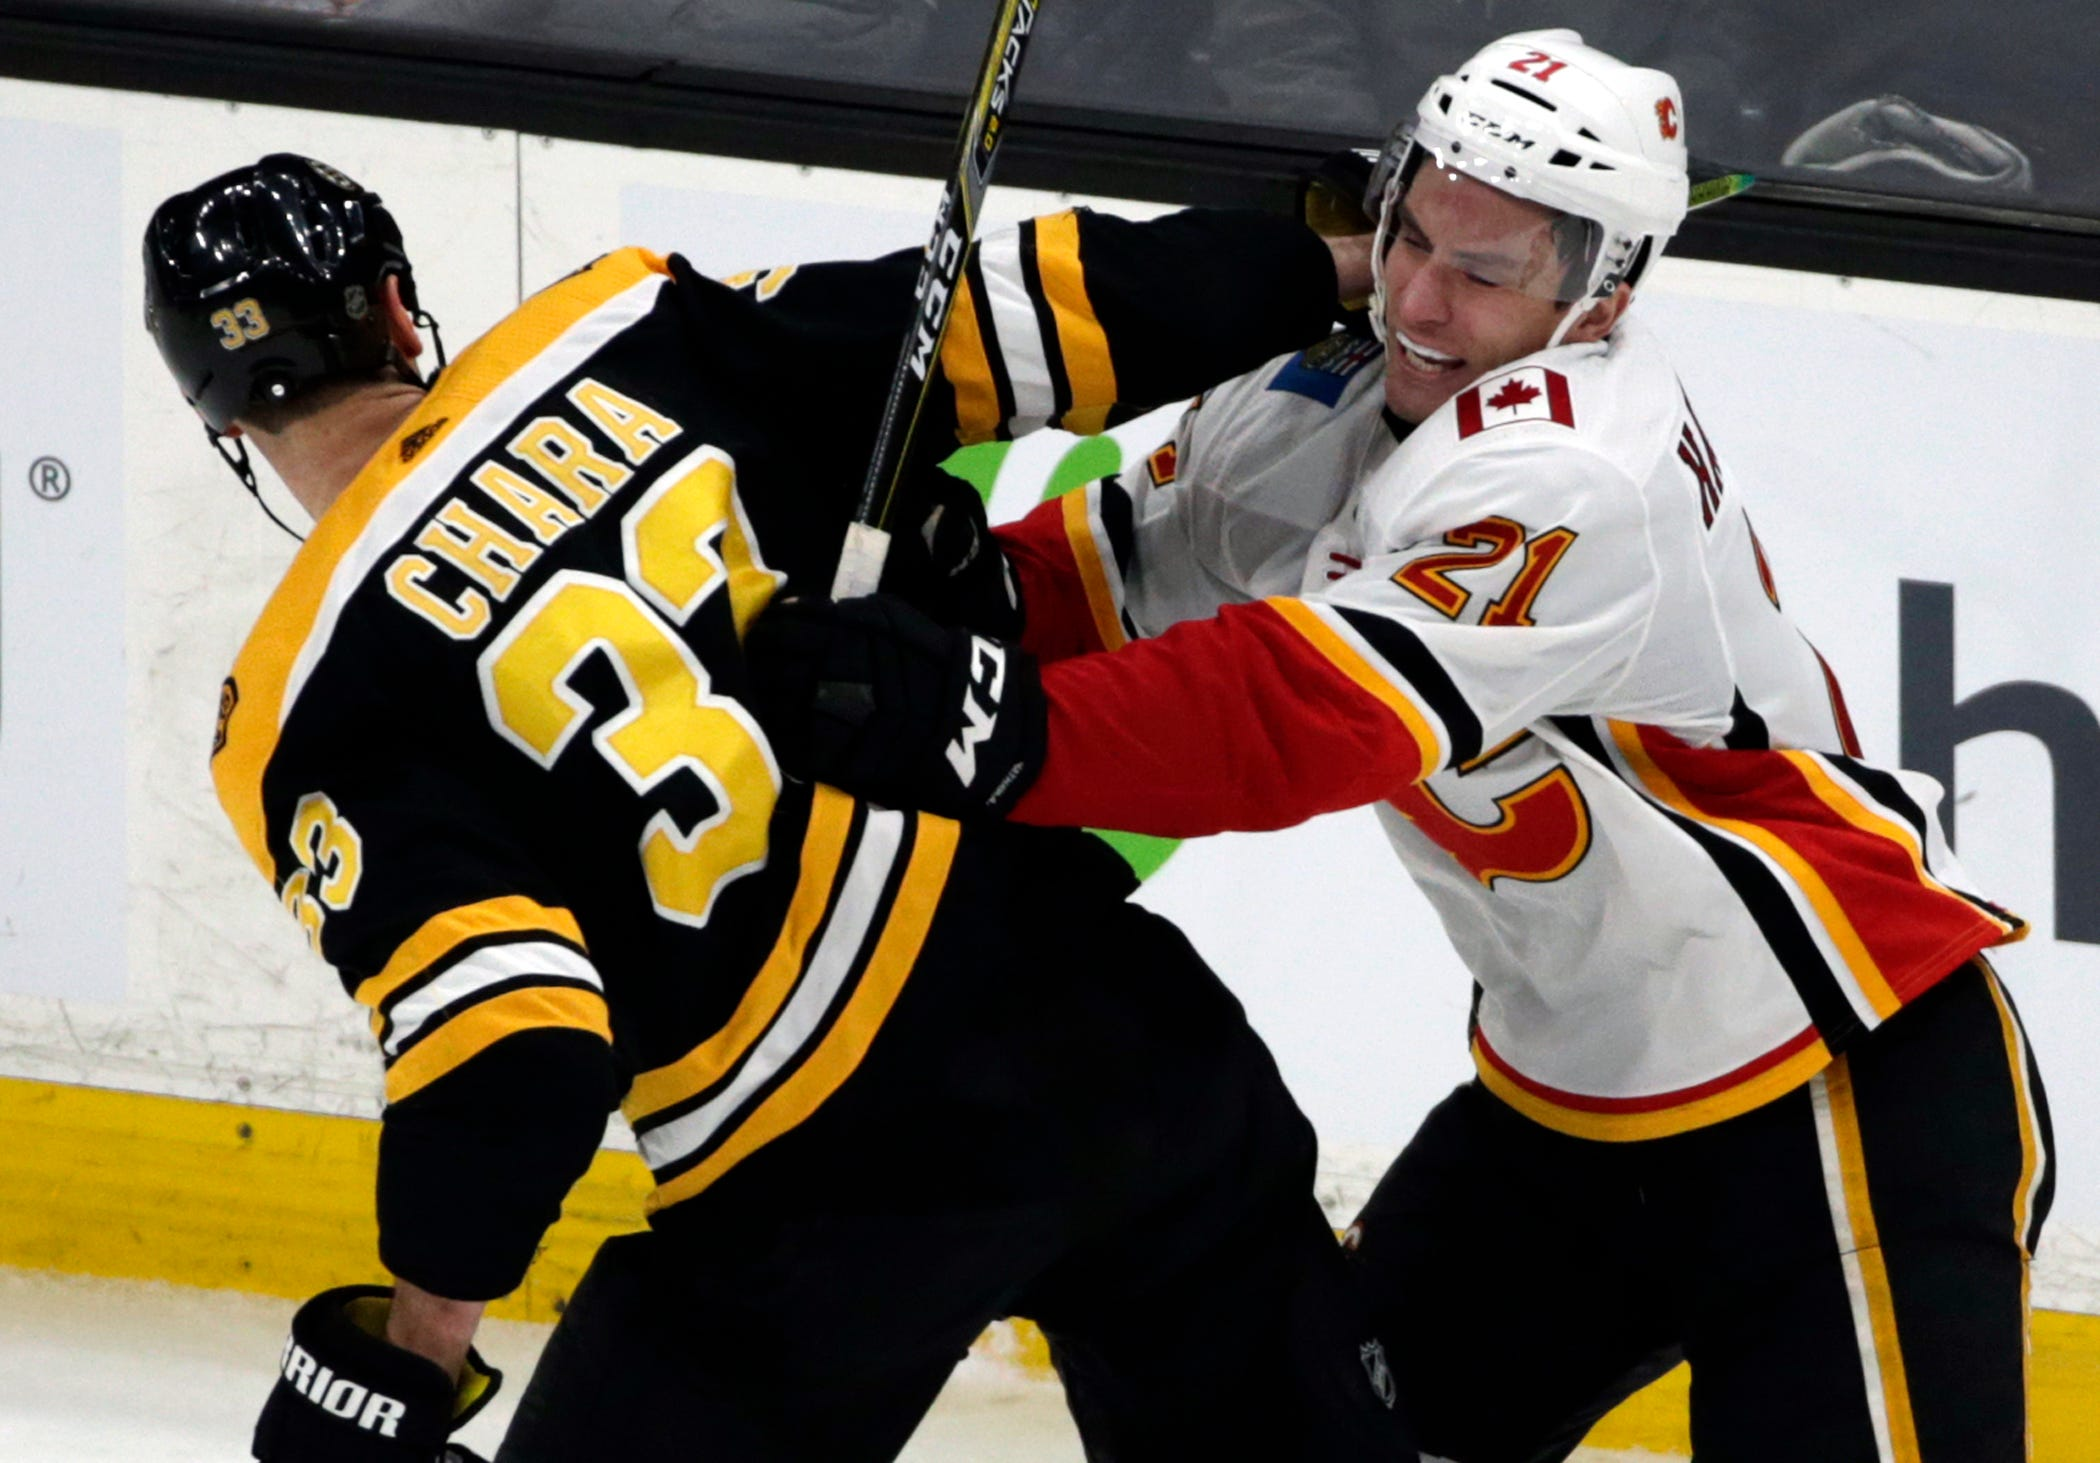 DeBrusk, Marchand lift Bruins over Flames 6-4